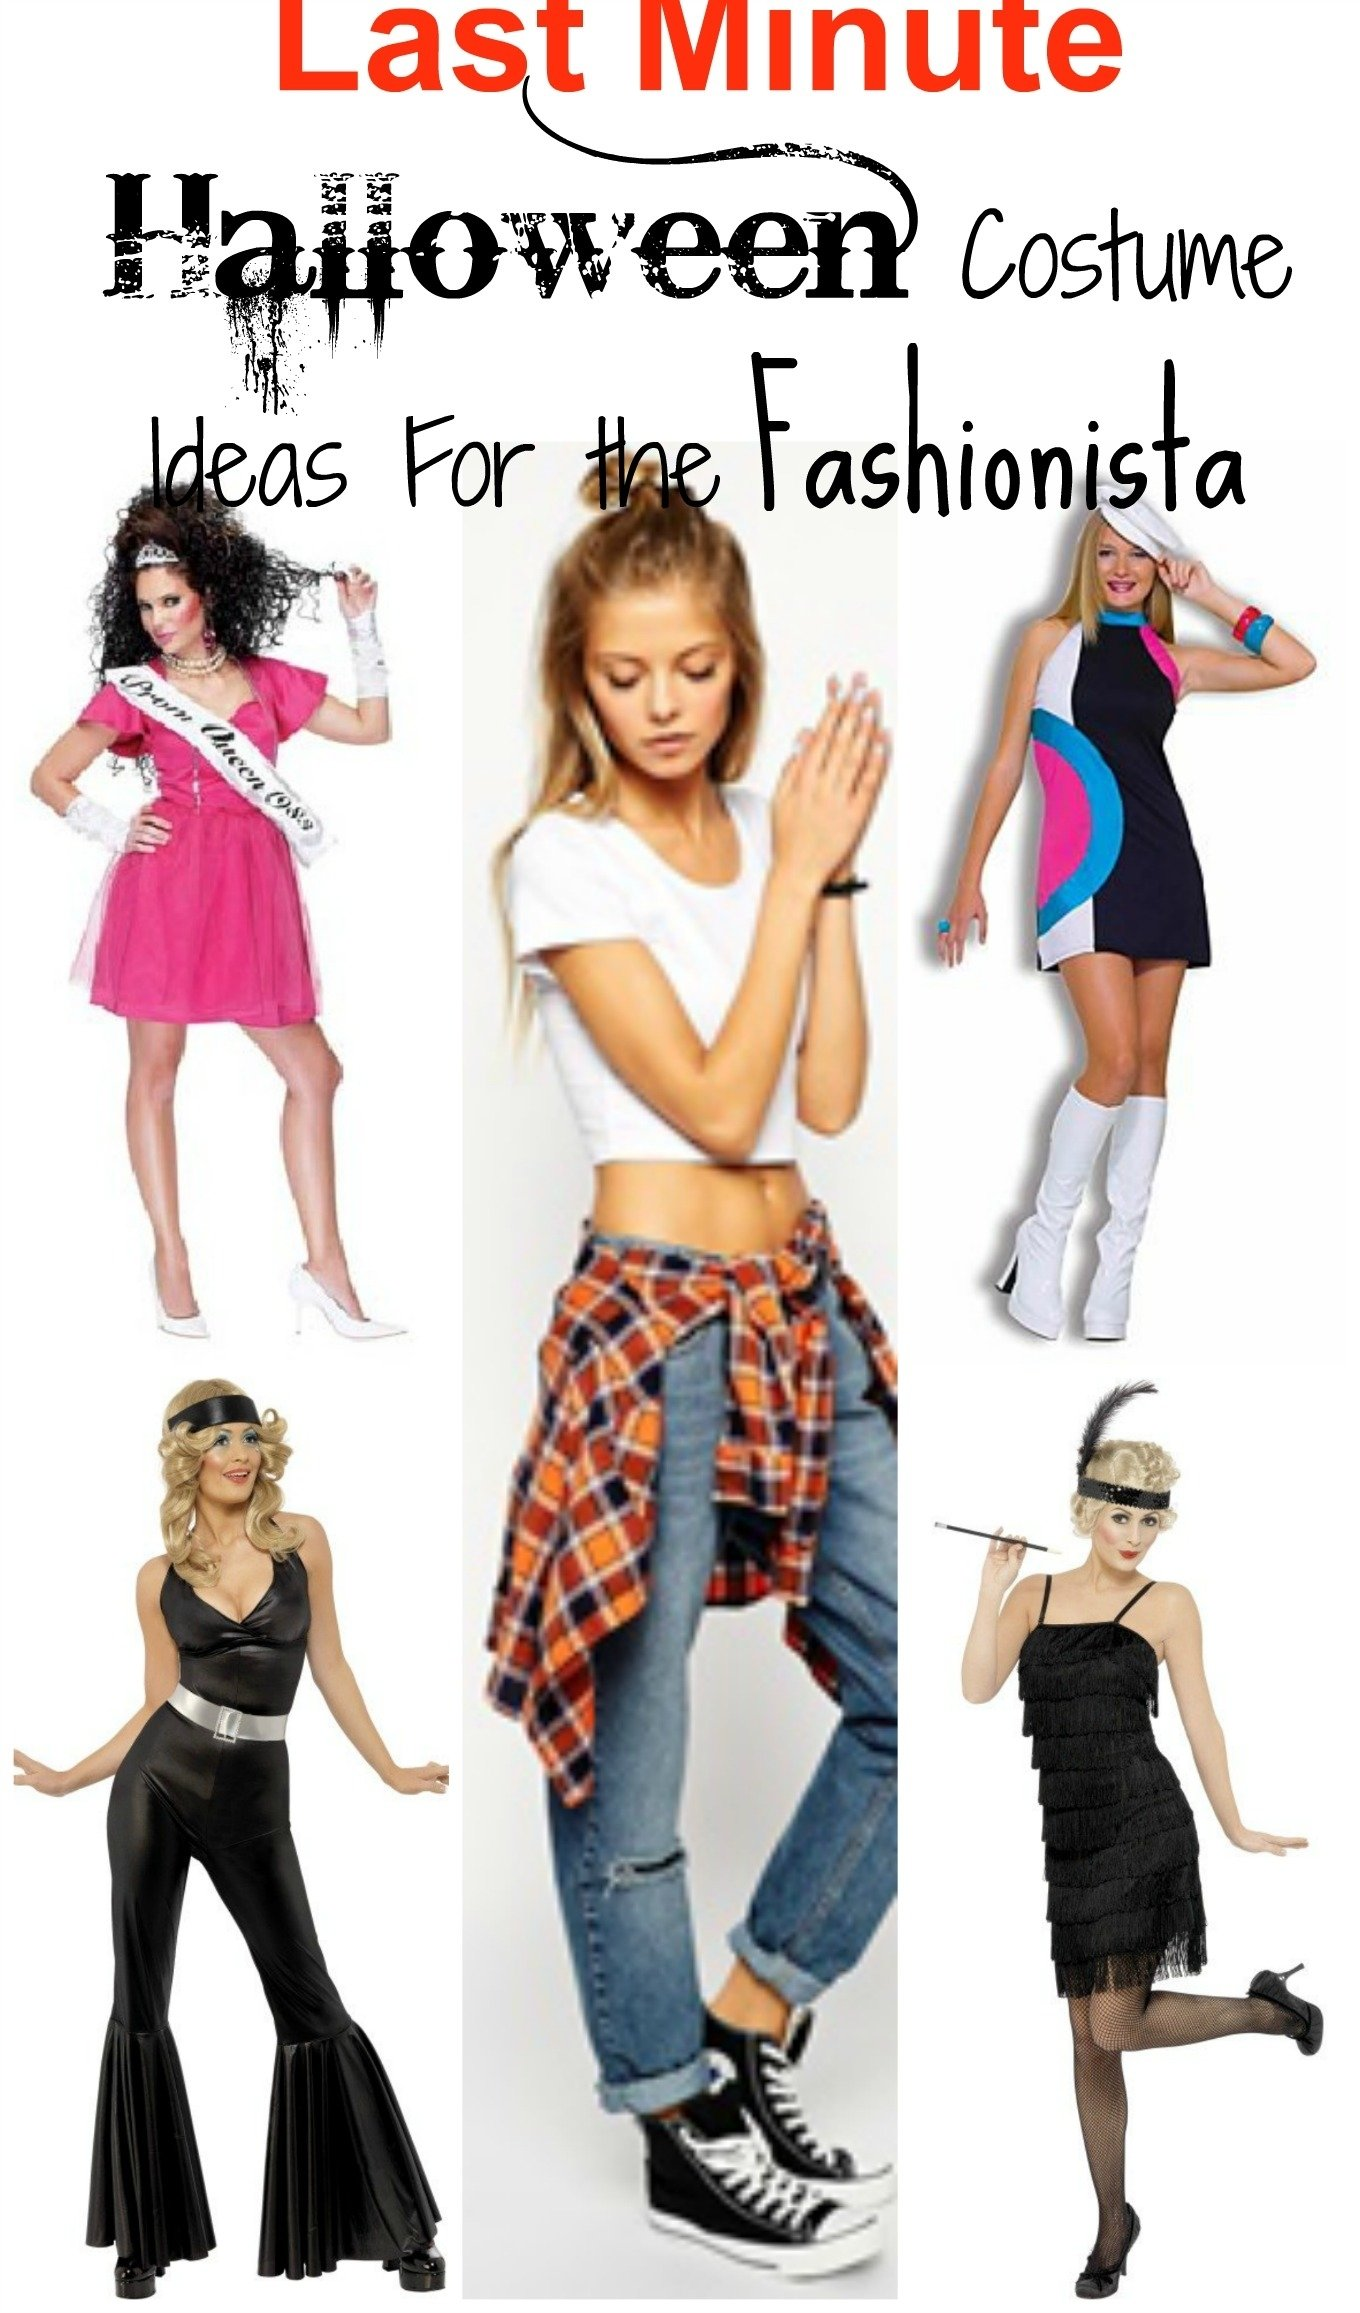 10 Great Last Minute Costume Ideas For Girls 5 last minute halloween costume ideas for the fashionista 3